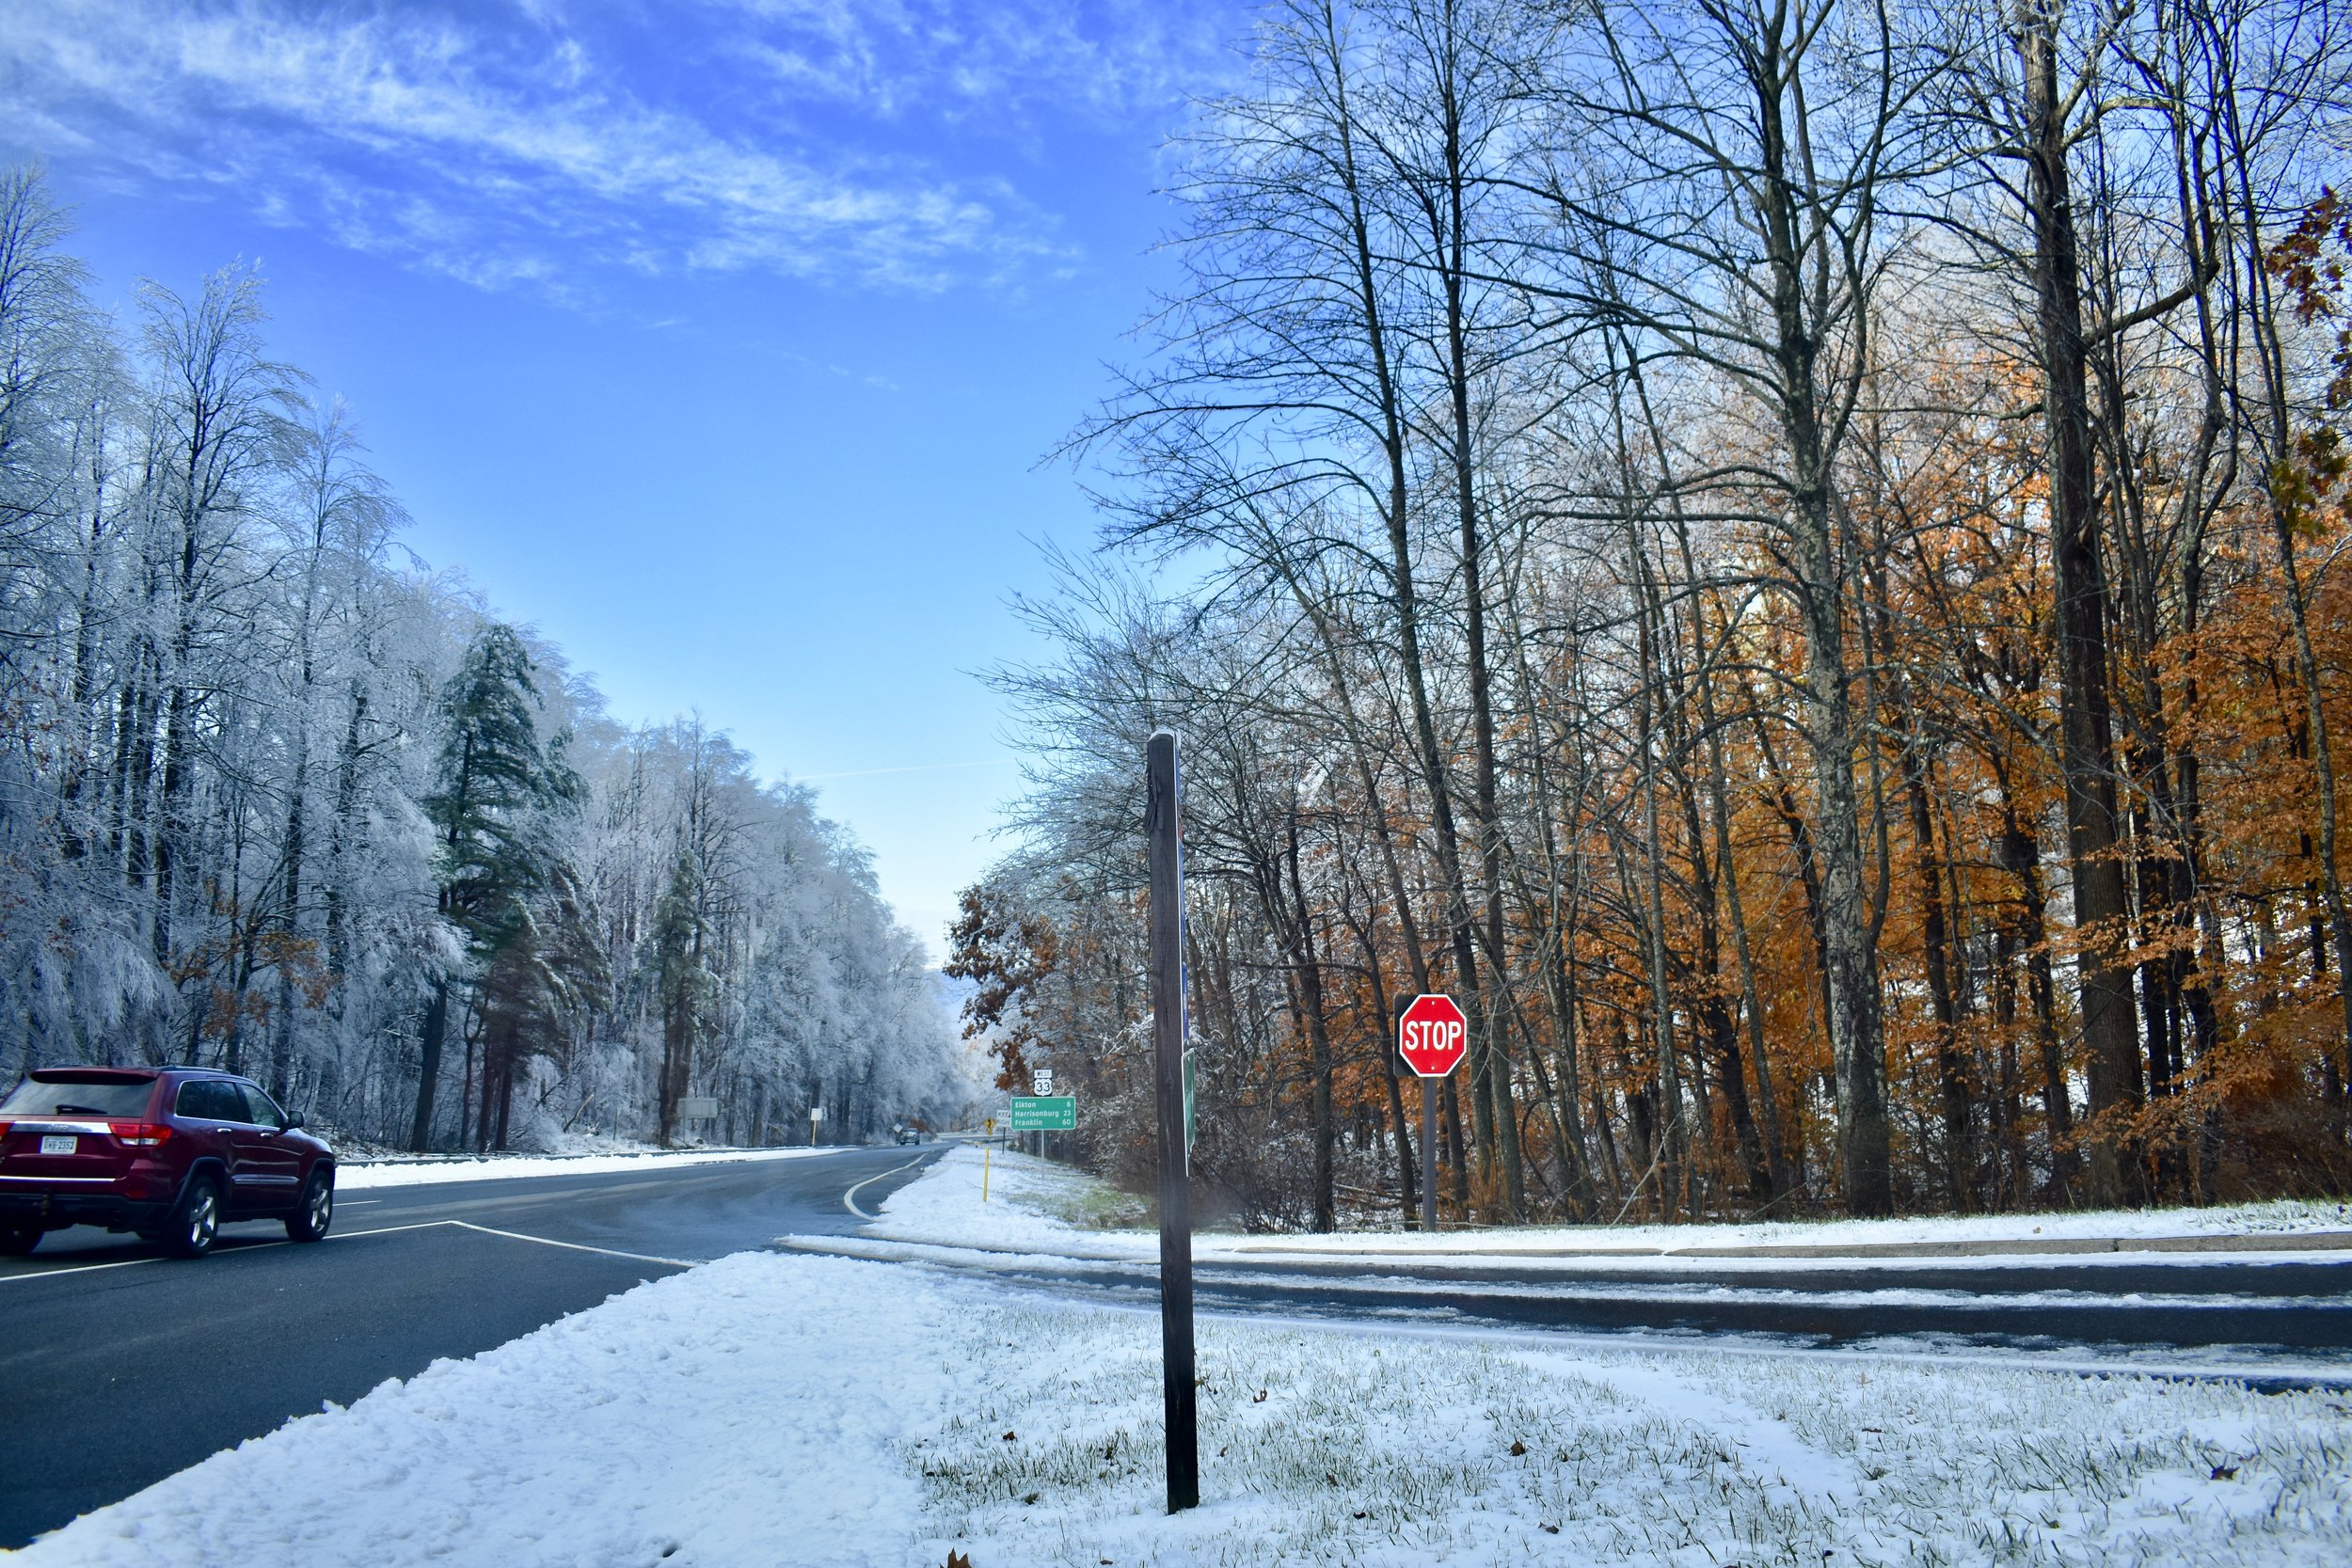 Vestiges of autumn on the right. Full-blown winter on the left. Near Skyline Drive.